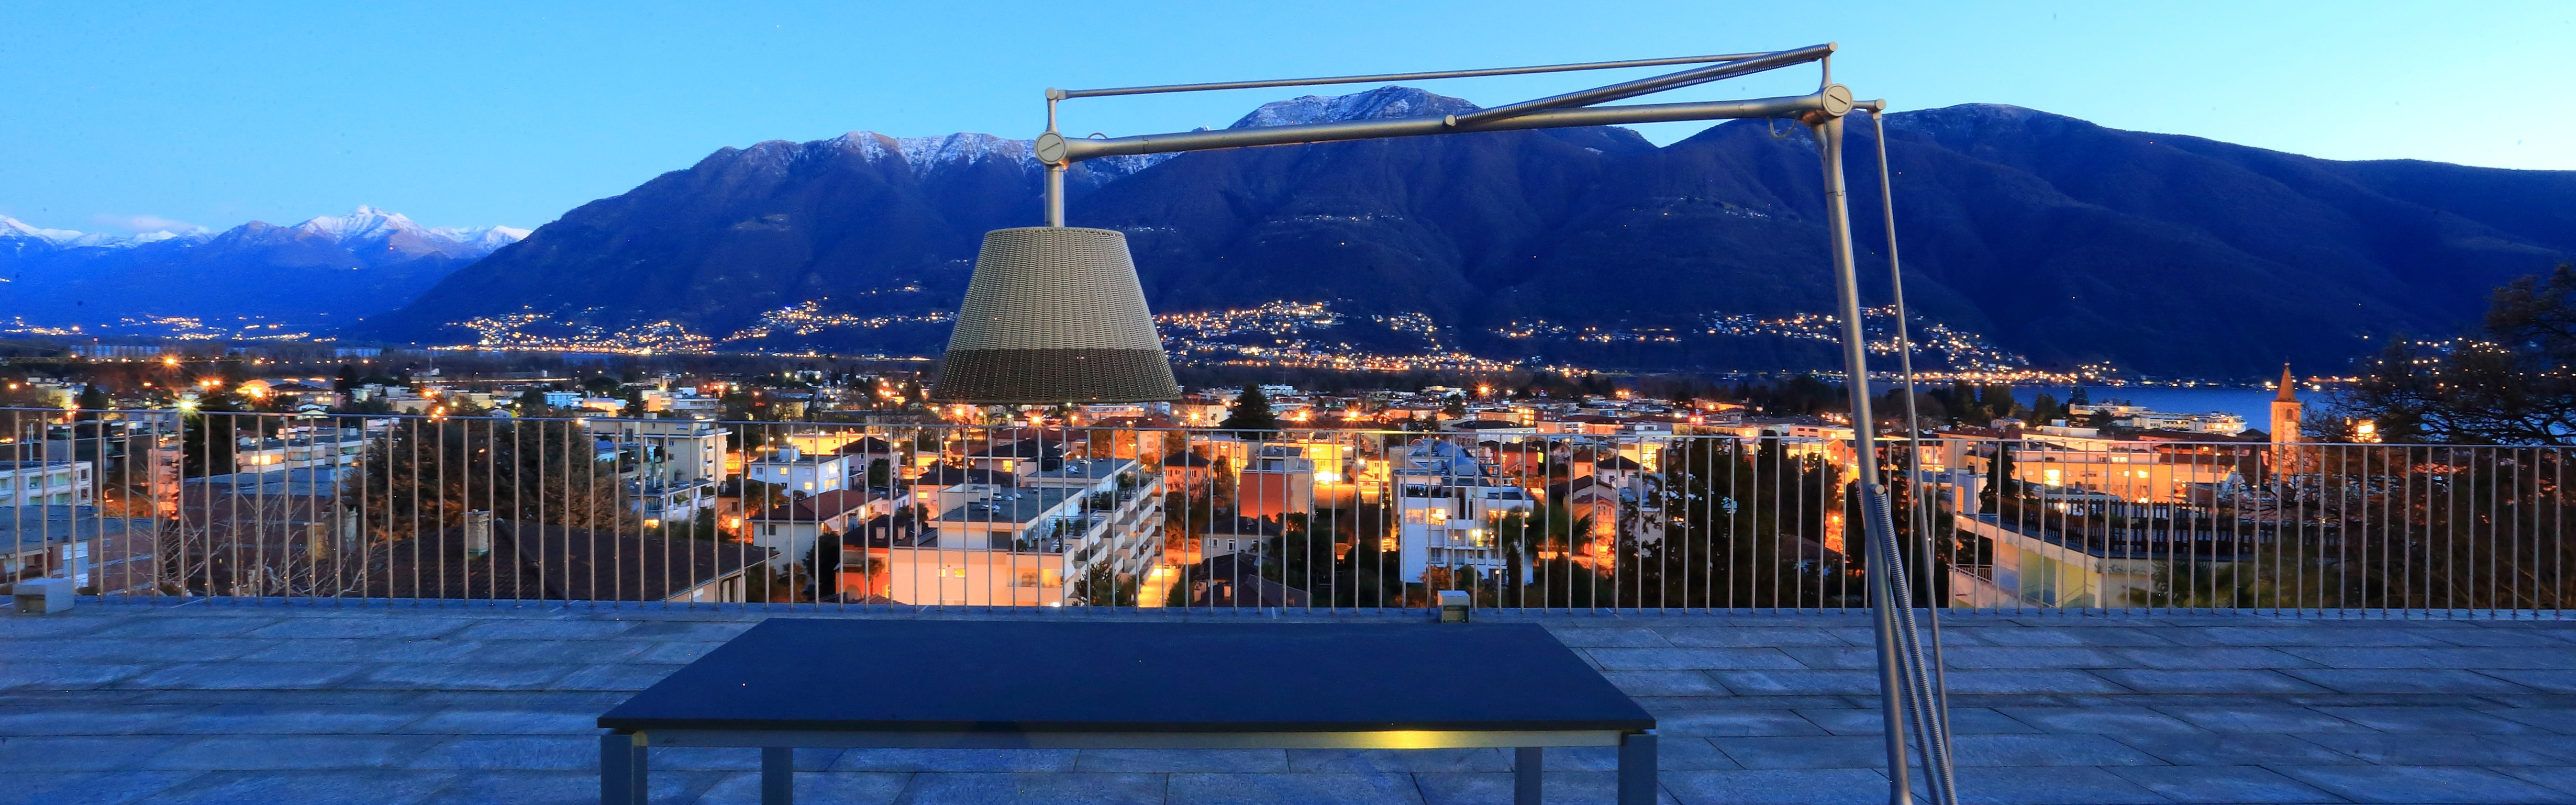 Immobilien in Ascona - slider 4 neu.JPG